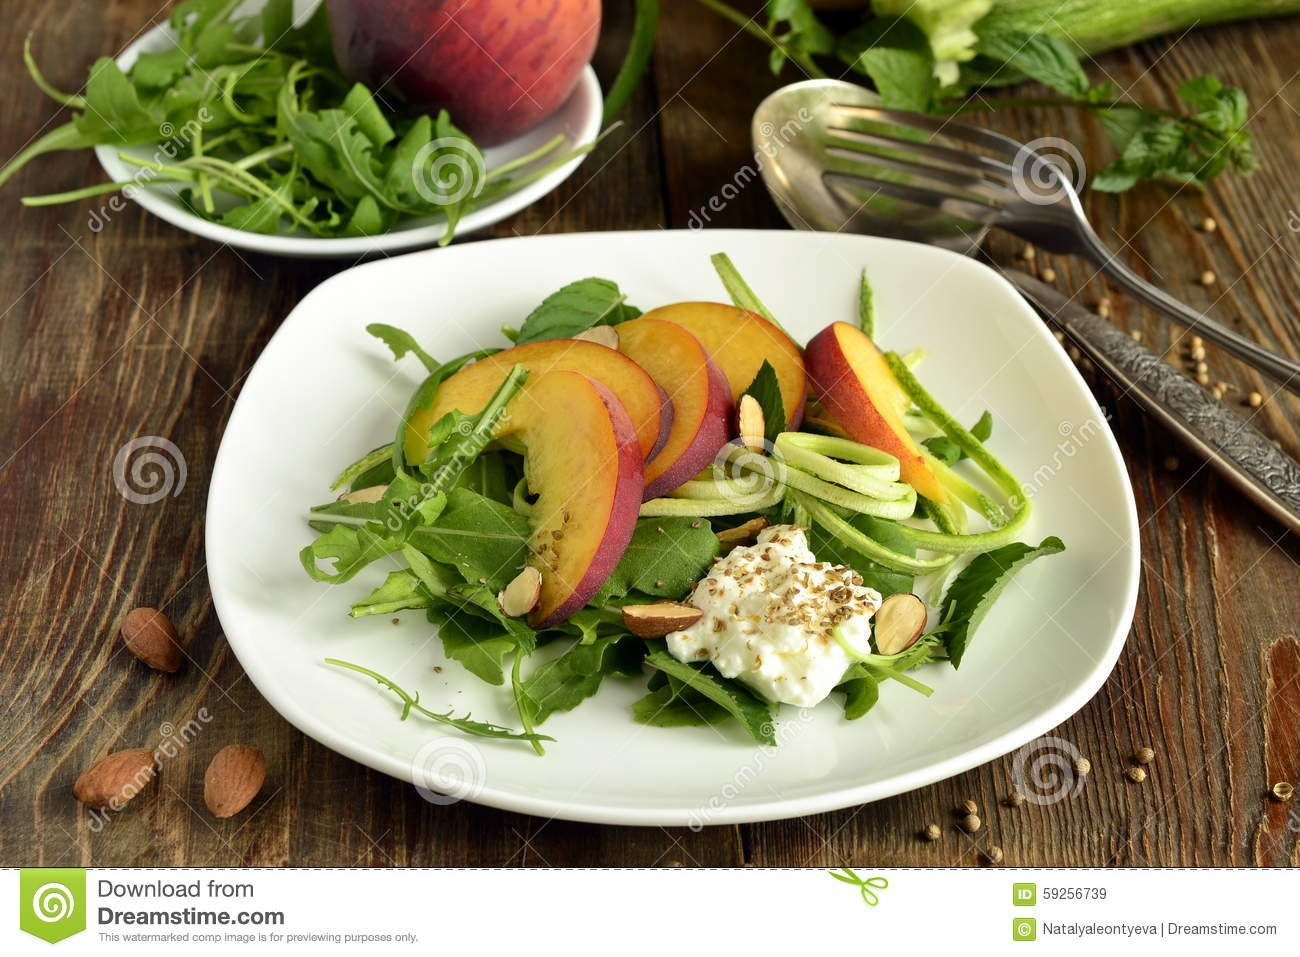 Salad with arugula, zucchini, peaches and yogurt.